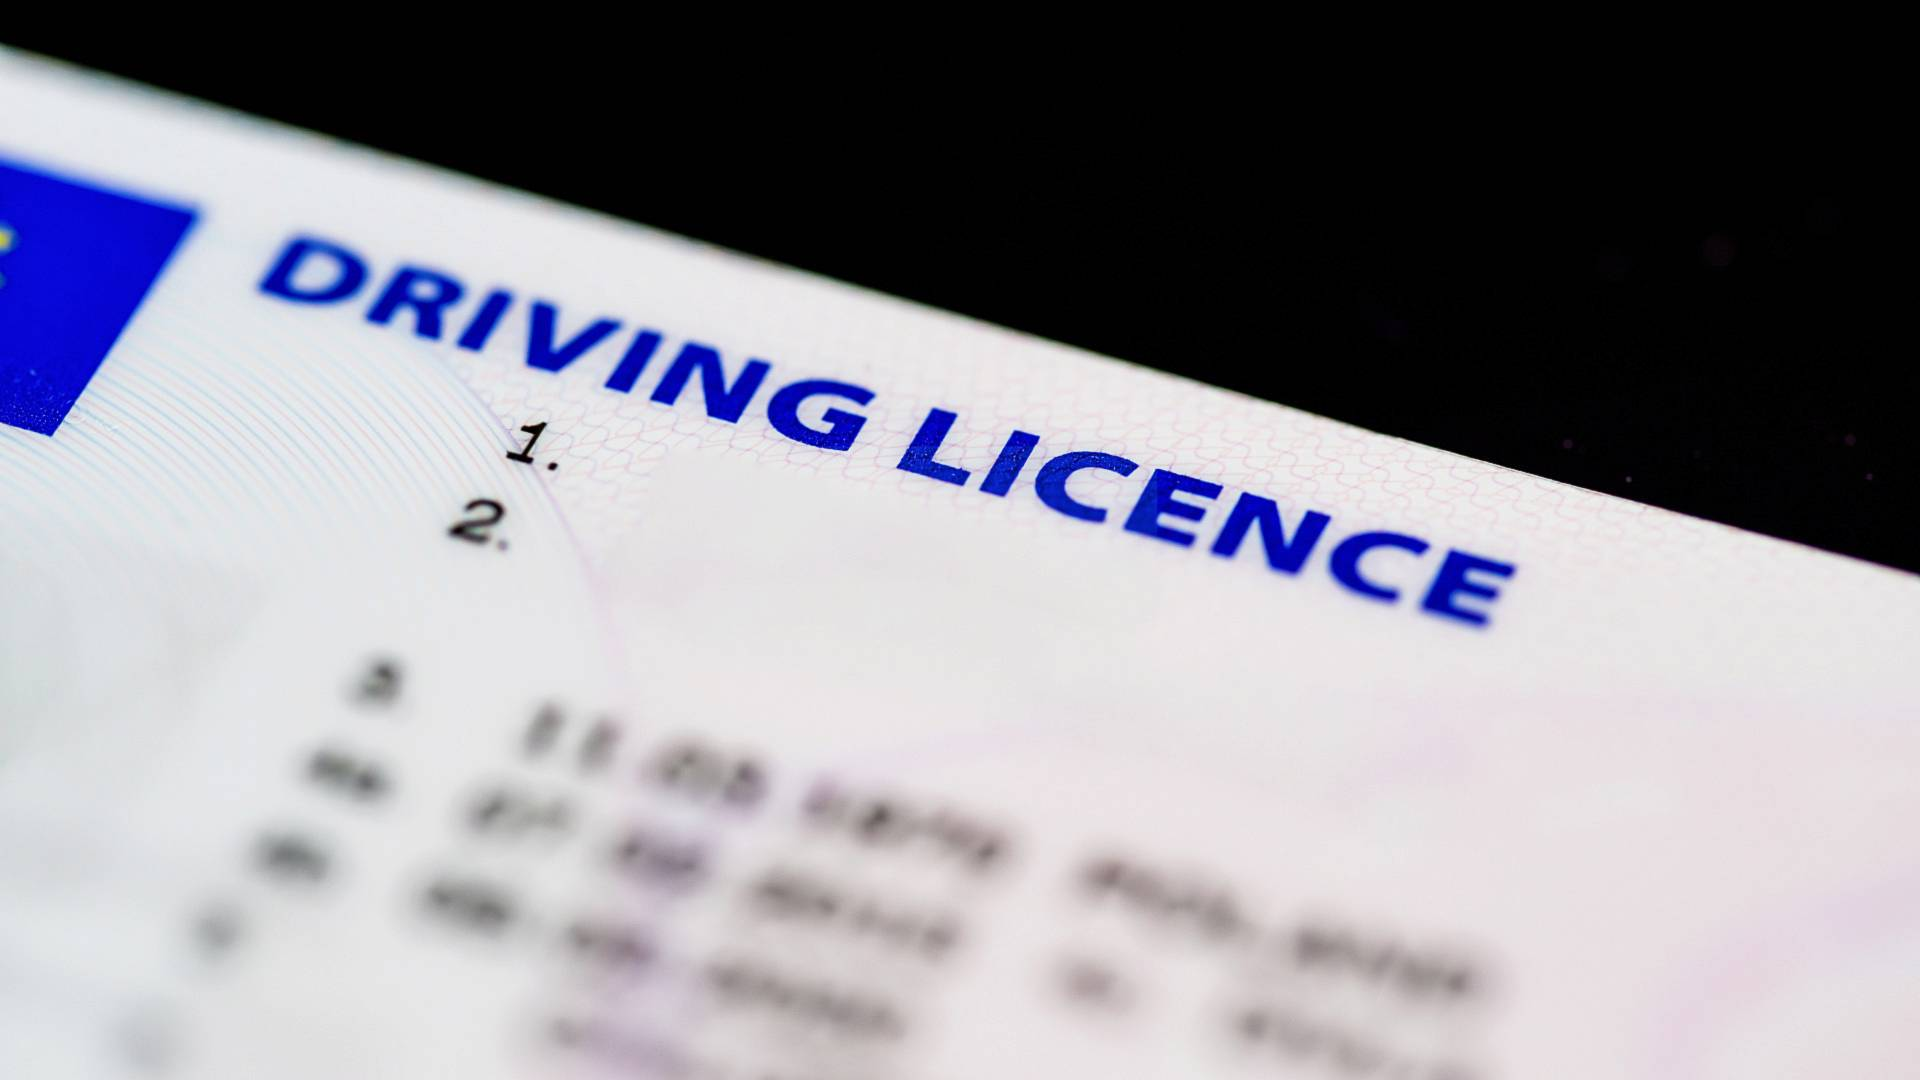 33 new drivers lost their licences every day in 2018